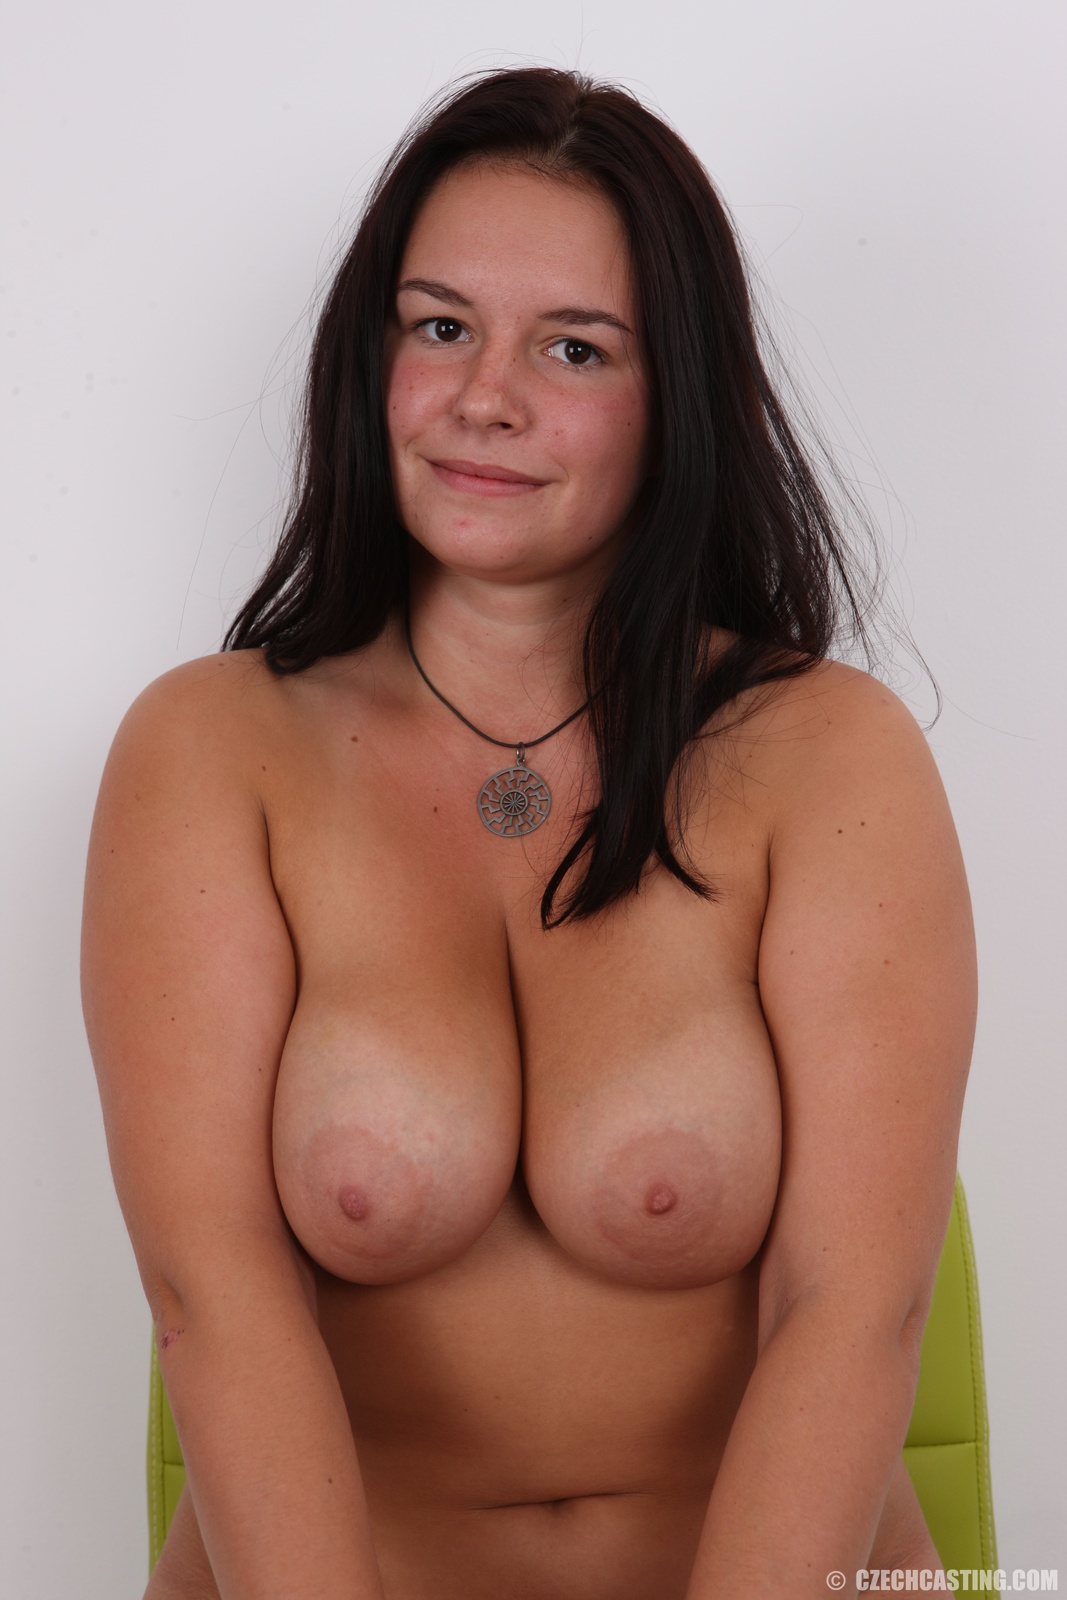 Huge tits with puffy nipples